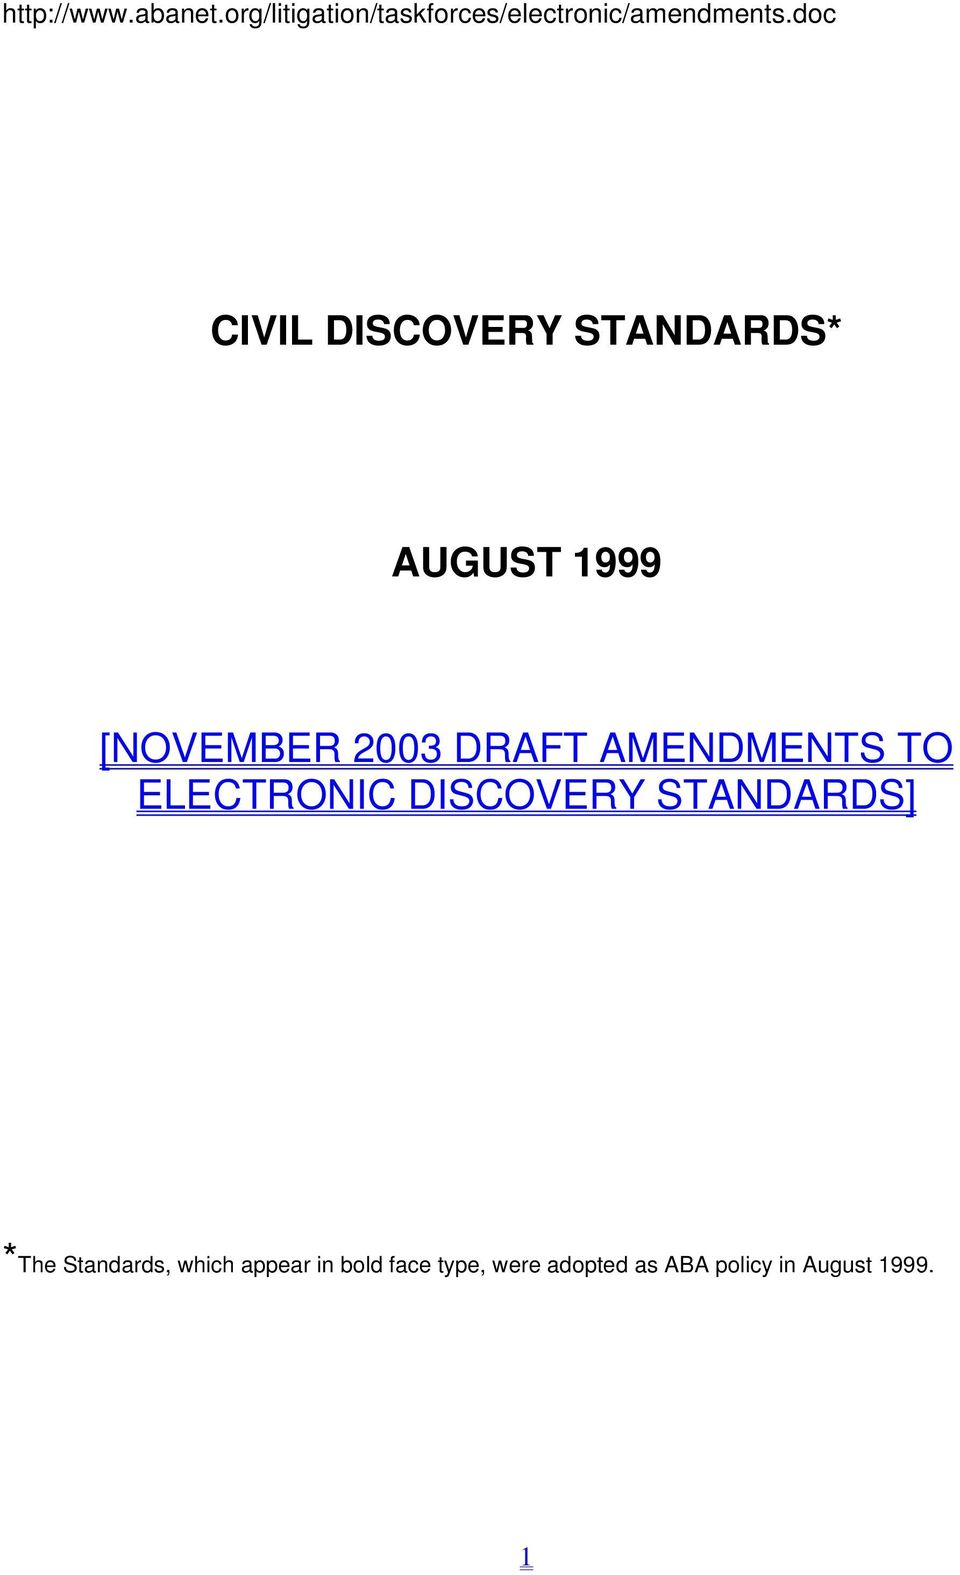 AMENDMENTS TO ELECTRONIC DISCOVERY STANDARDS] *The Standards,